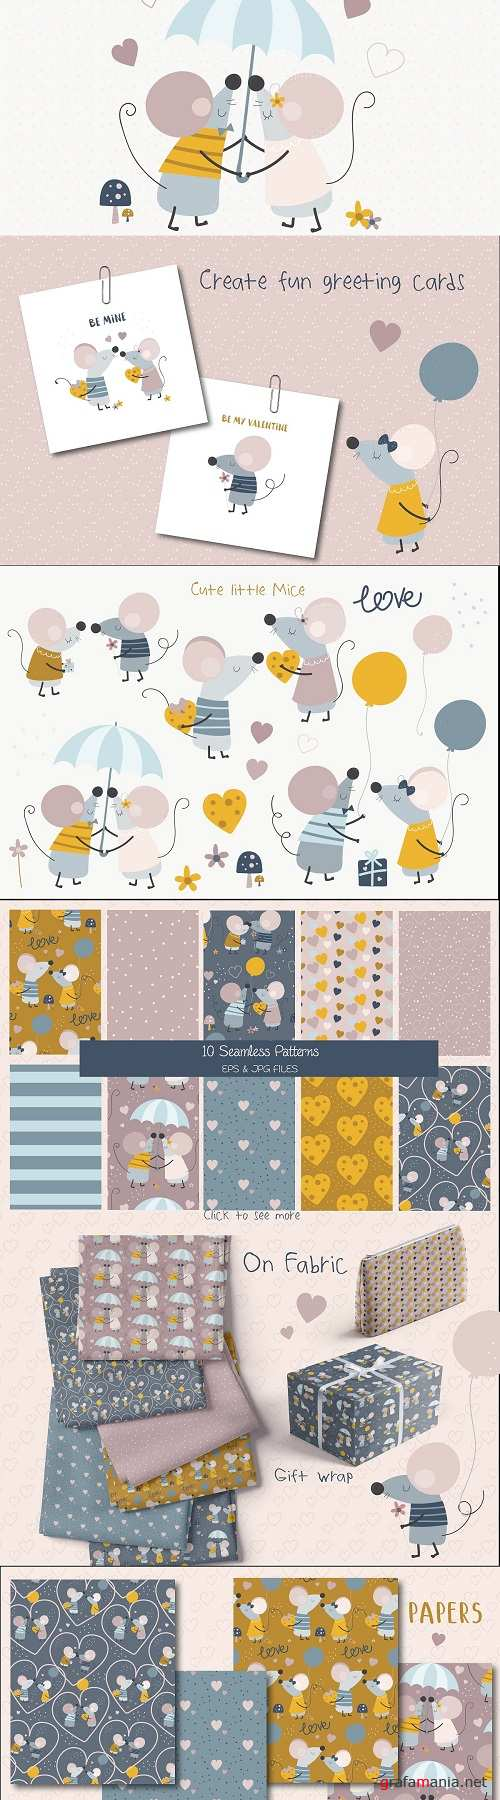 Squeak Hearts Set - 4452195 - 4454133 - Clipart and Papers